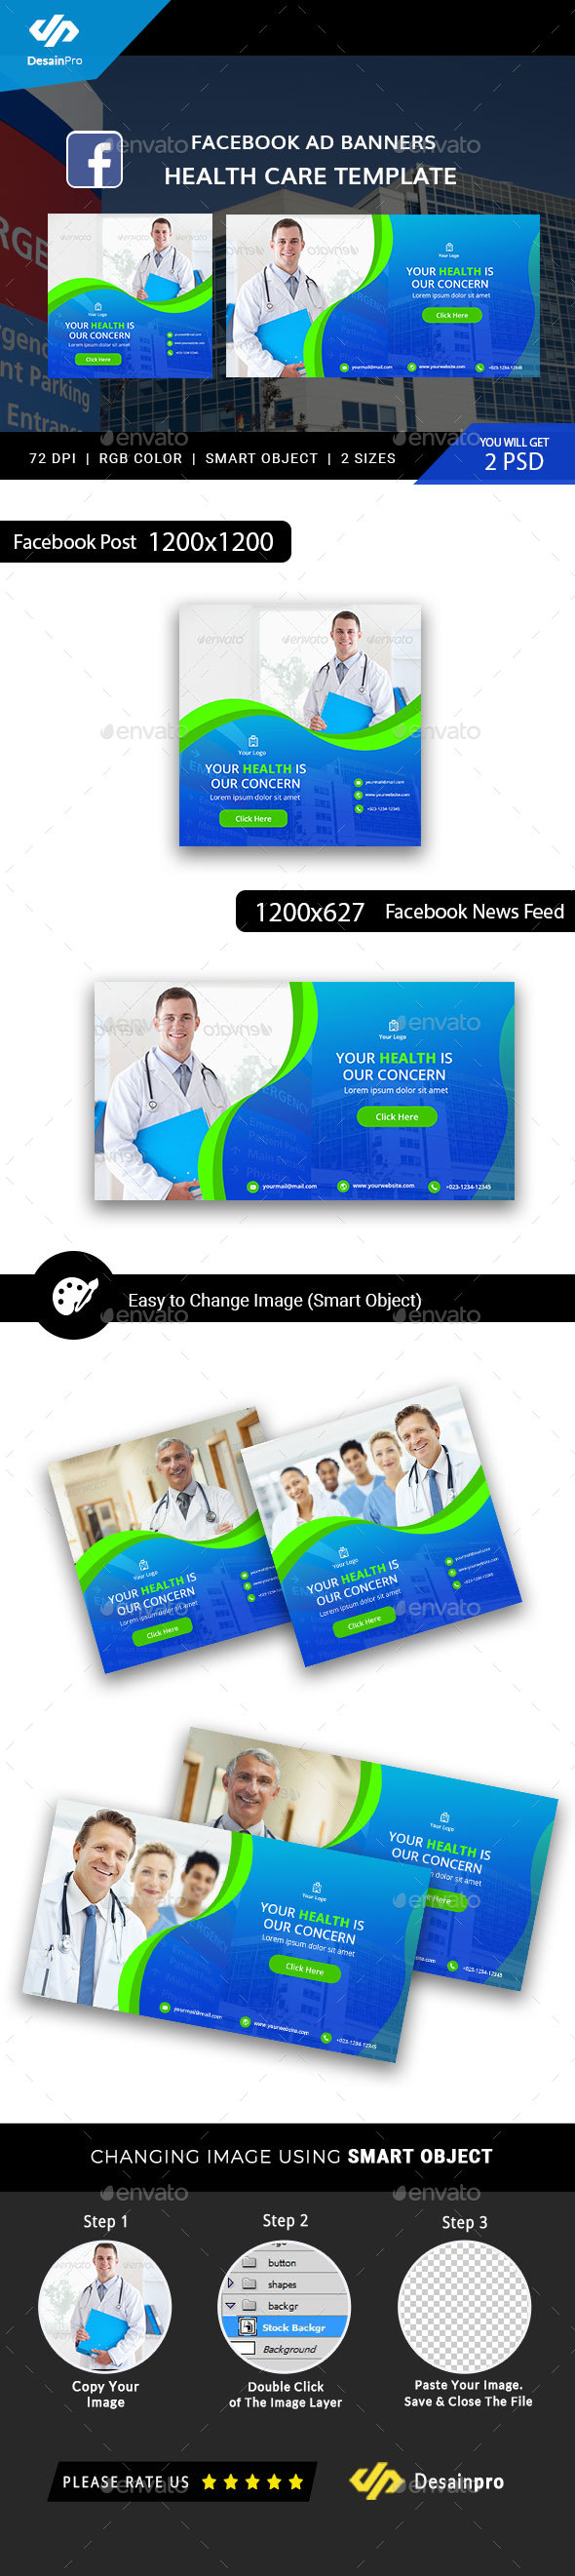 Healthcare Center Facebook Ad Banners - AR - Social Media Web Elements